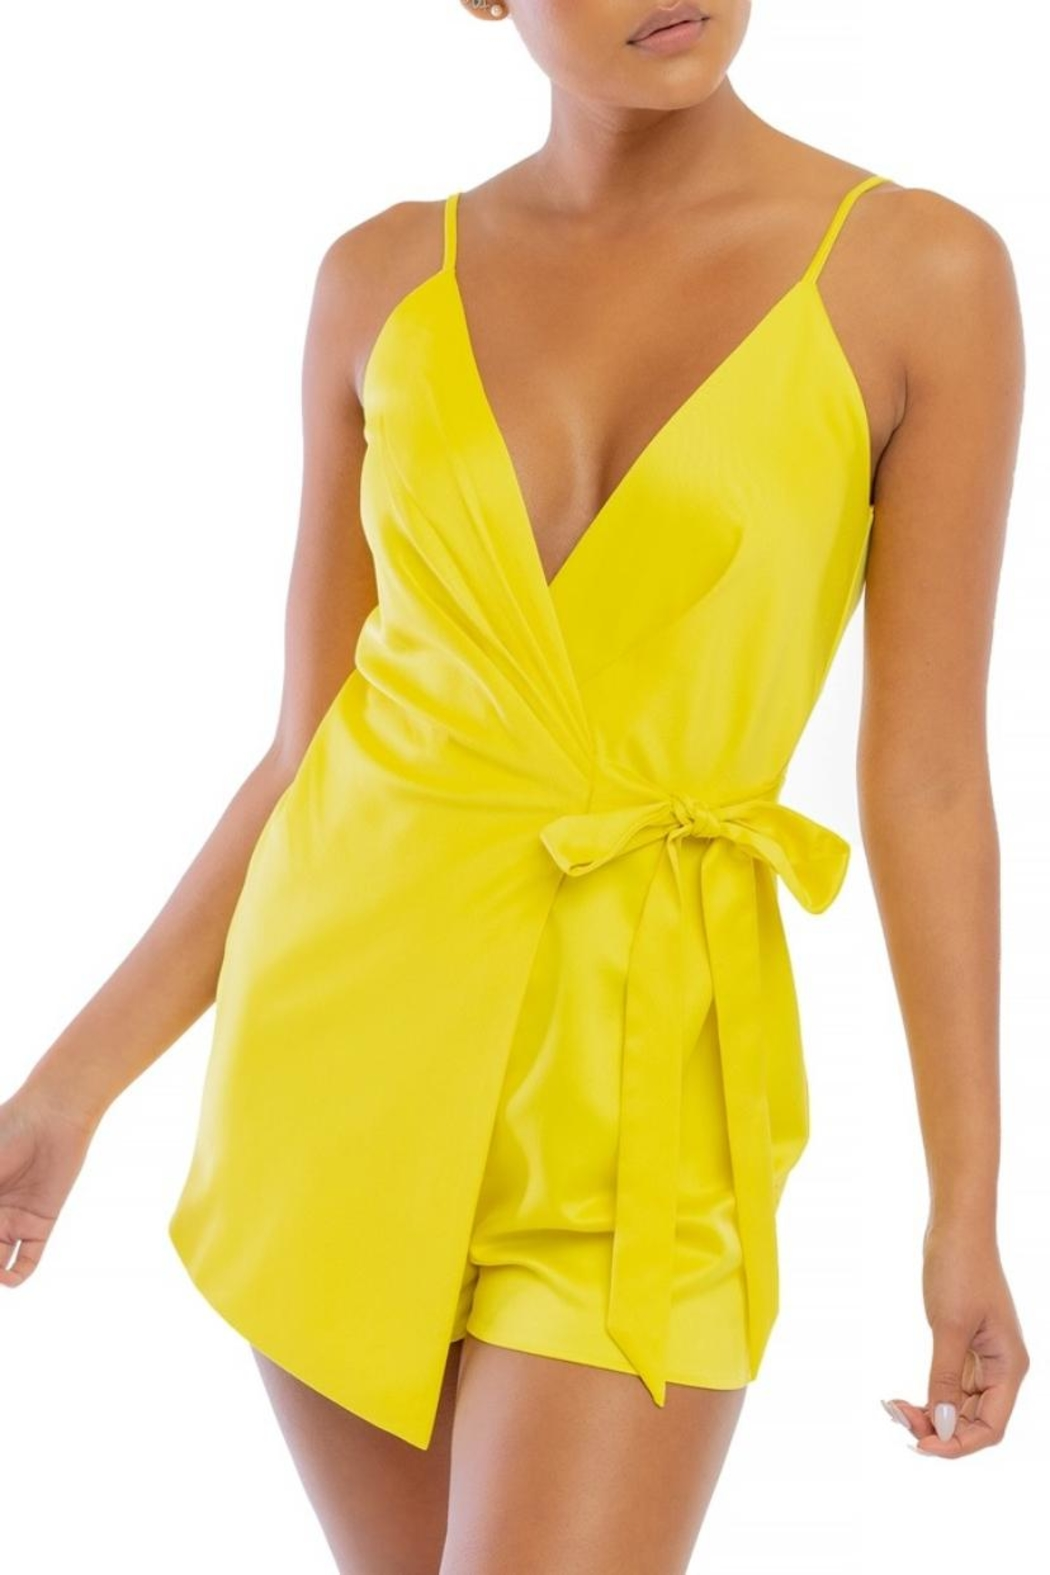 luxxel Yellow Wrap Romper - Main Image